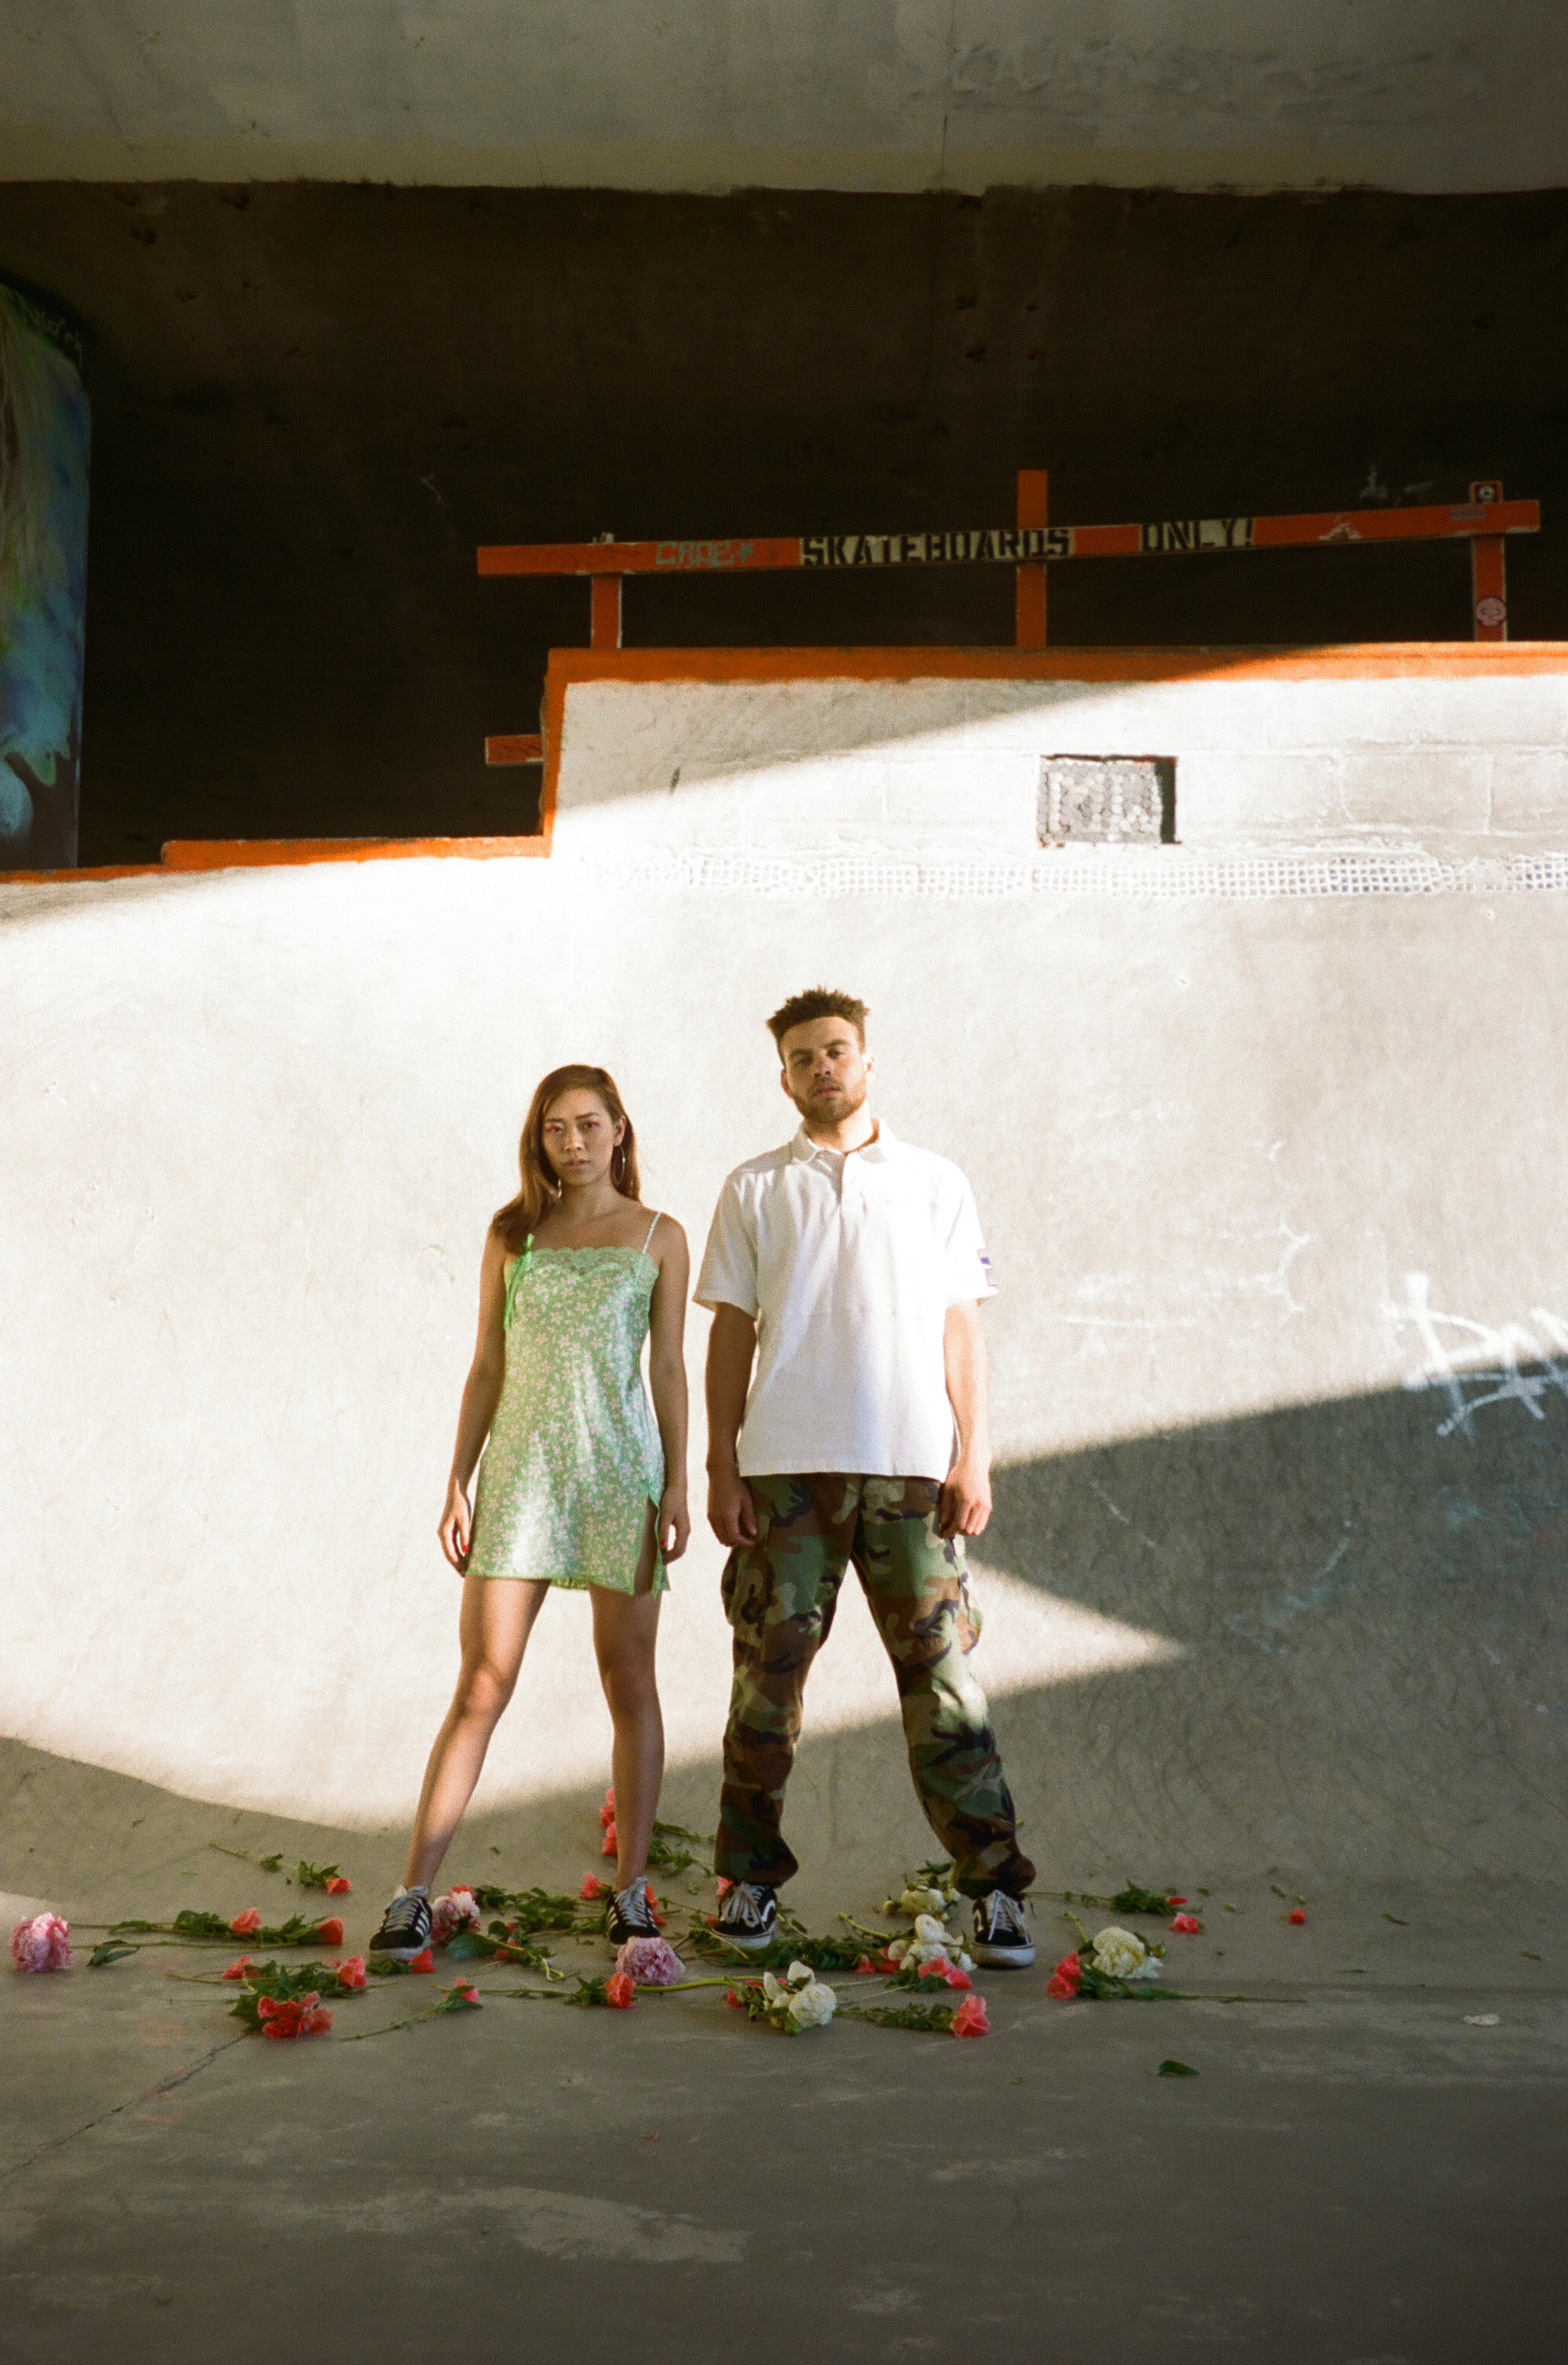 HIS AND HERS - NYT LOOKBOOK SUMMER 2017PRODUCED, STYLED & CREATIVE DIRECTED BY LOUISA MENG